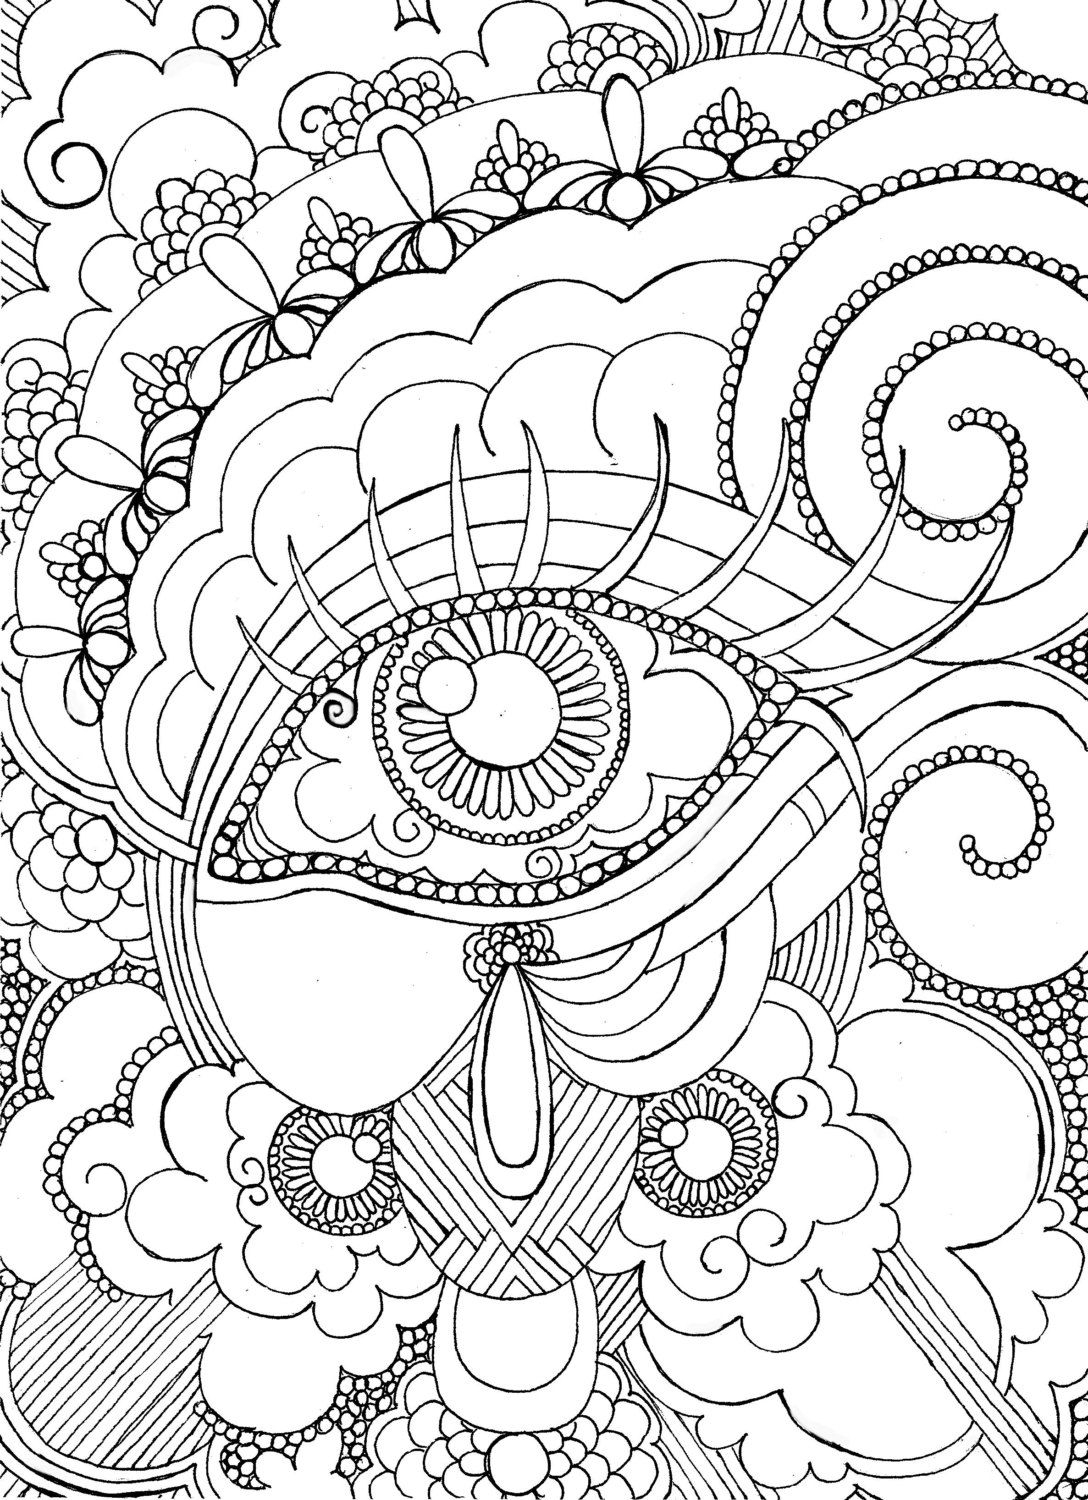 Steampunk Gears Coloring Pages  Gallery 3k - Free For Children